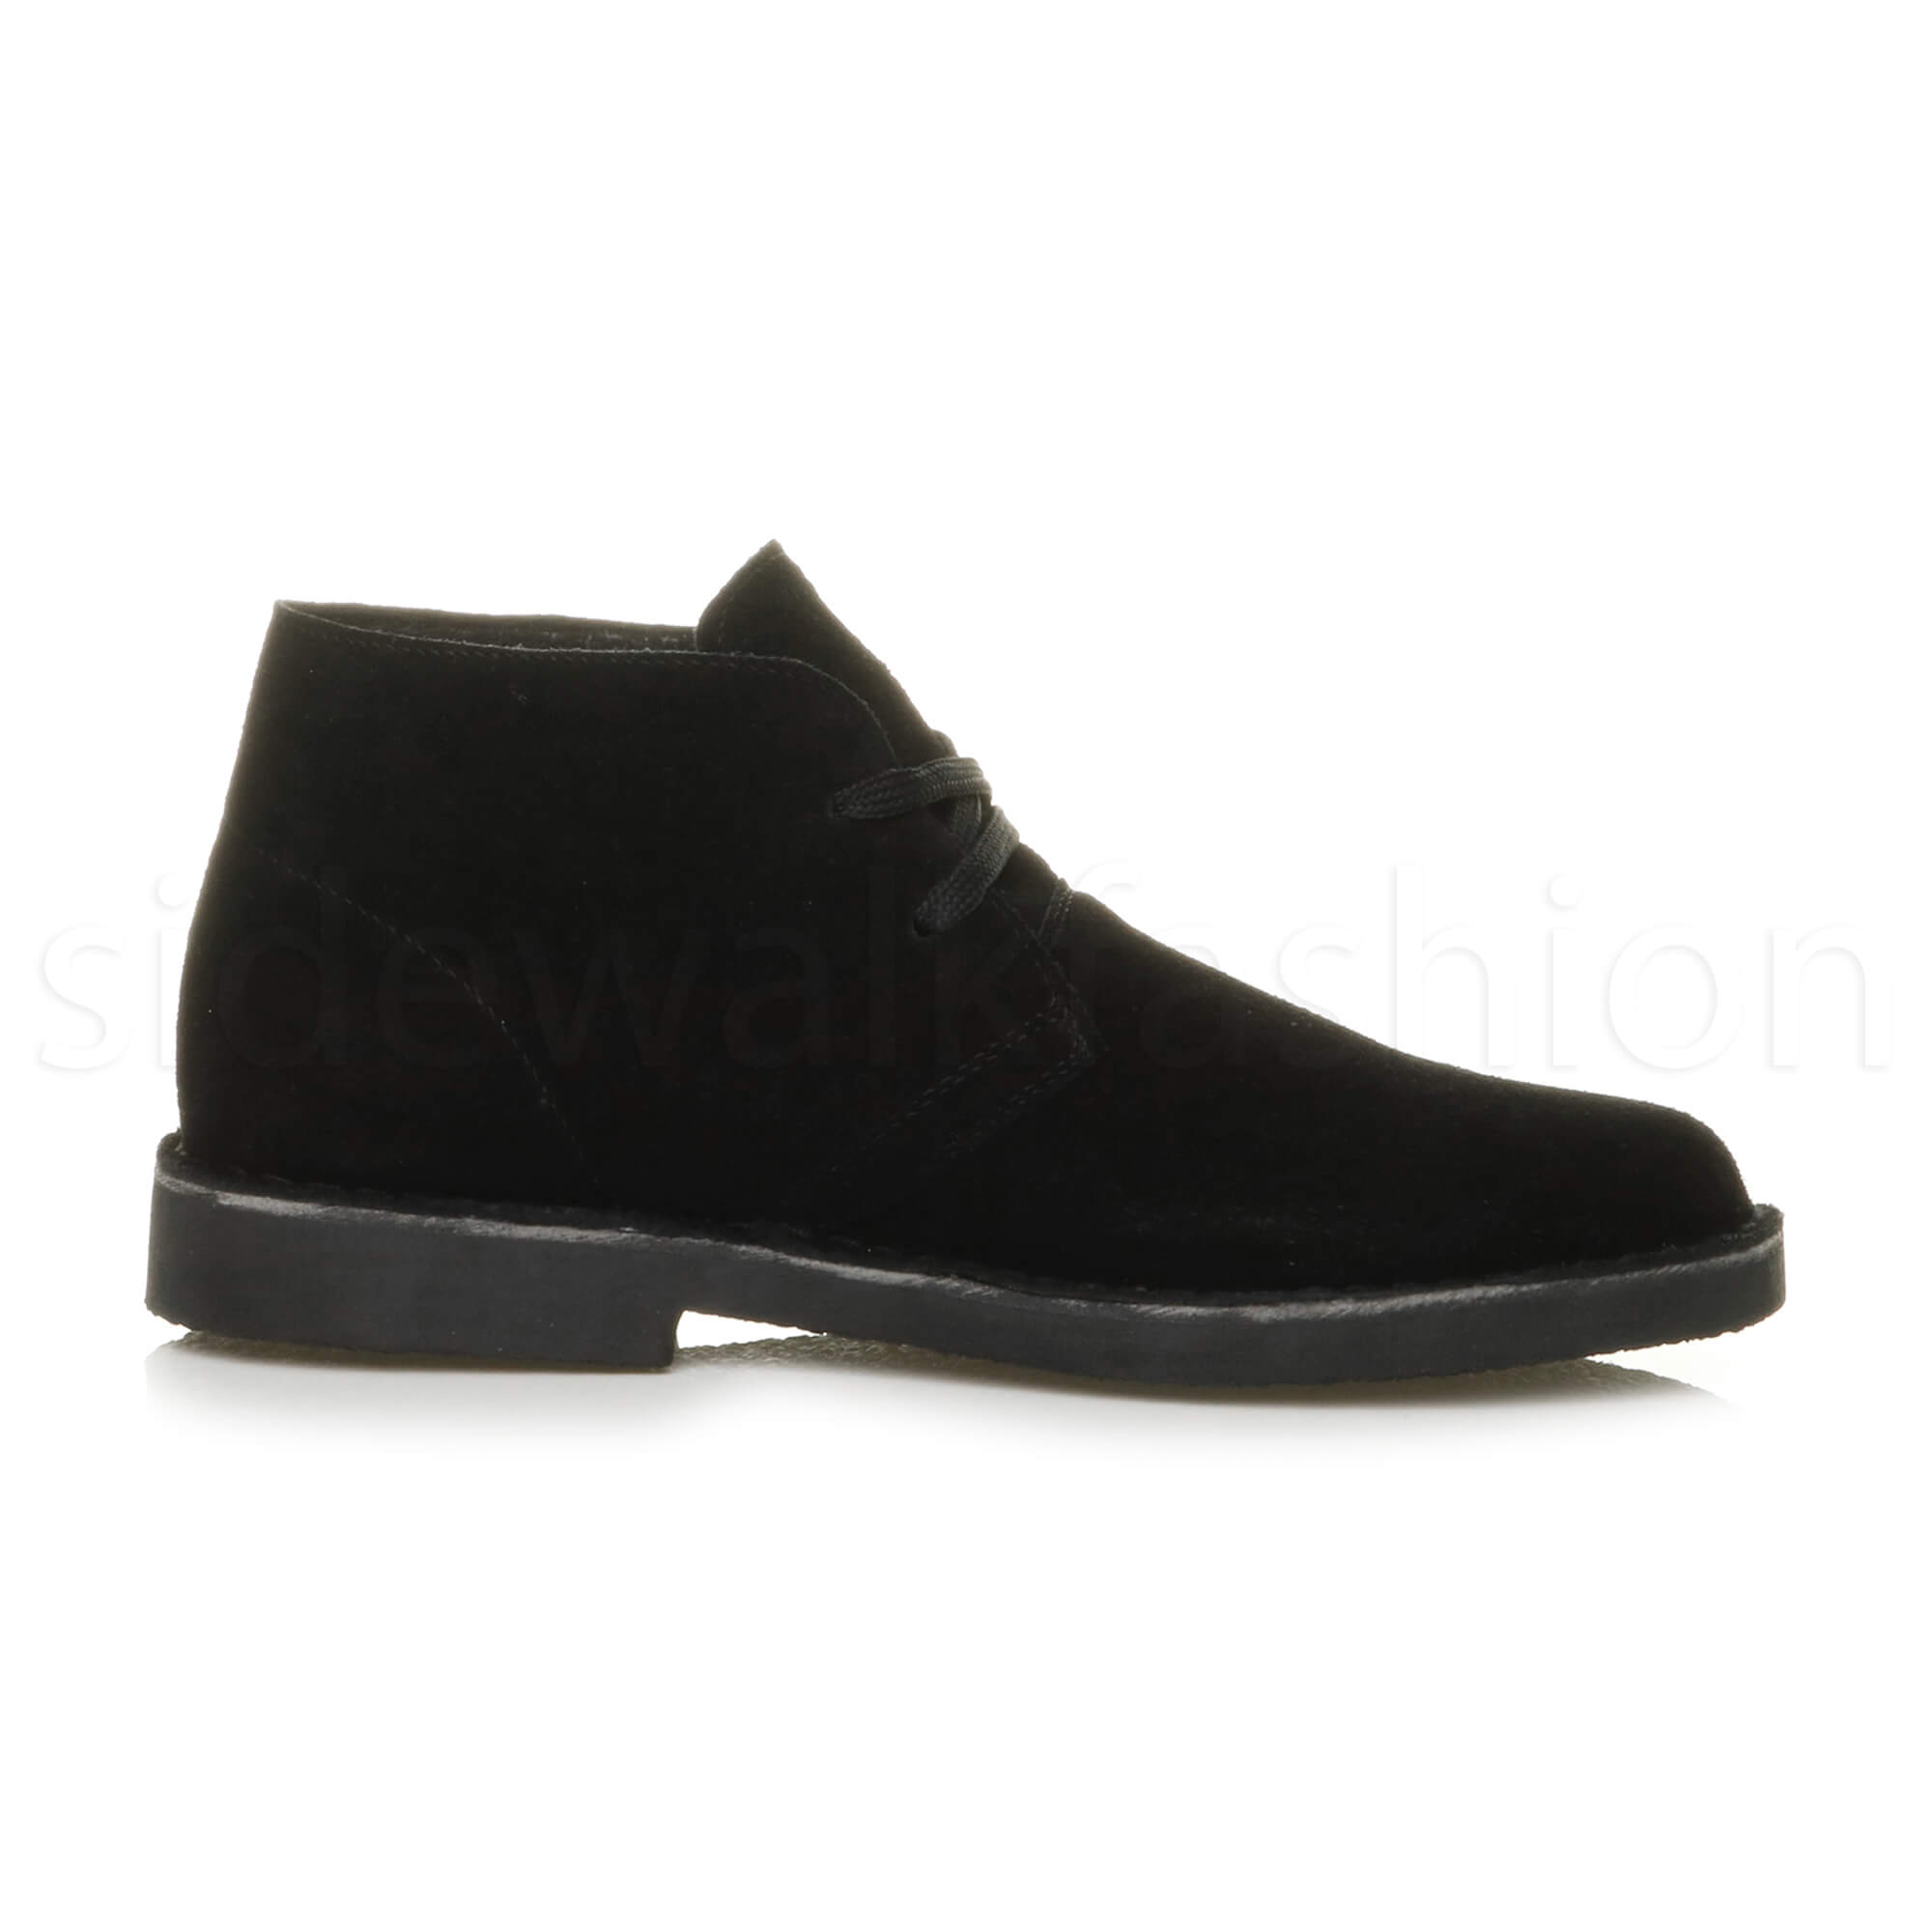 Mens-lace-up-rubber-sole-suede-ankle-chukka-desert-boots-classic-shoes-size thumbnail 4